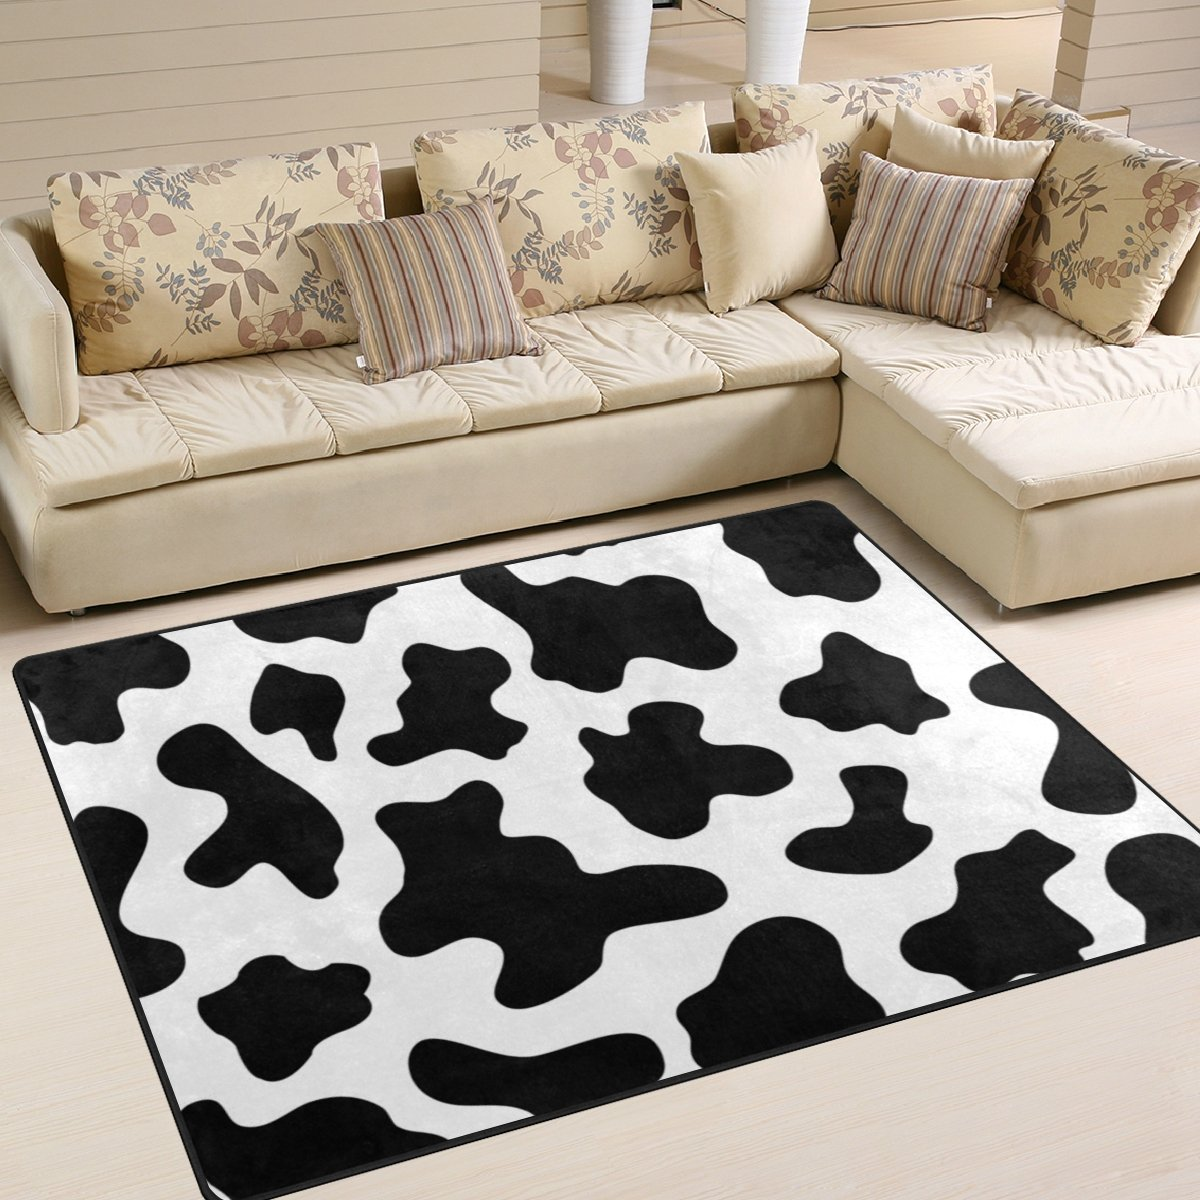 My Little Nest Black and White Cow Spot Kids Cartoon Area Rug 4'10'' x 6'8'' For Bedroom Dining Room Living Room Floor Mat Lightweight Carpet, Unique Anti Skid Indoor Outdoor Decor Soft Rug Carpets by My Little Nest (Image #2)